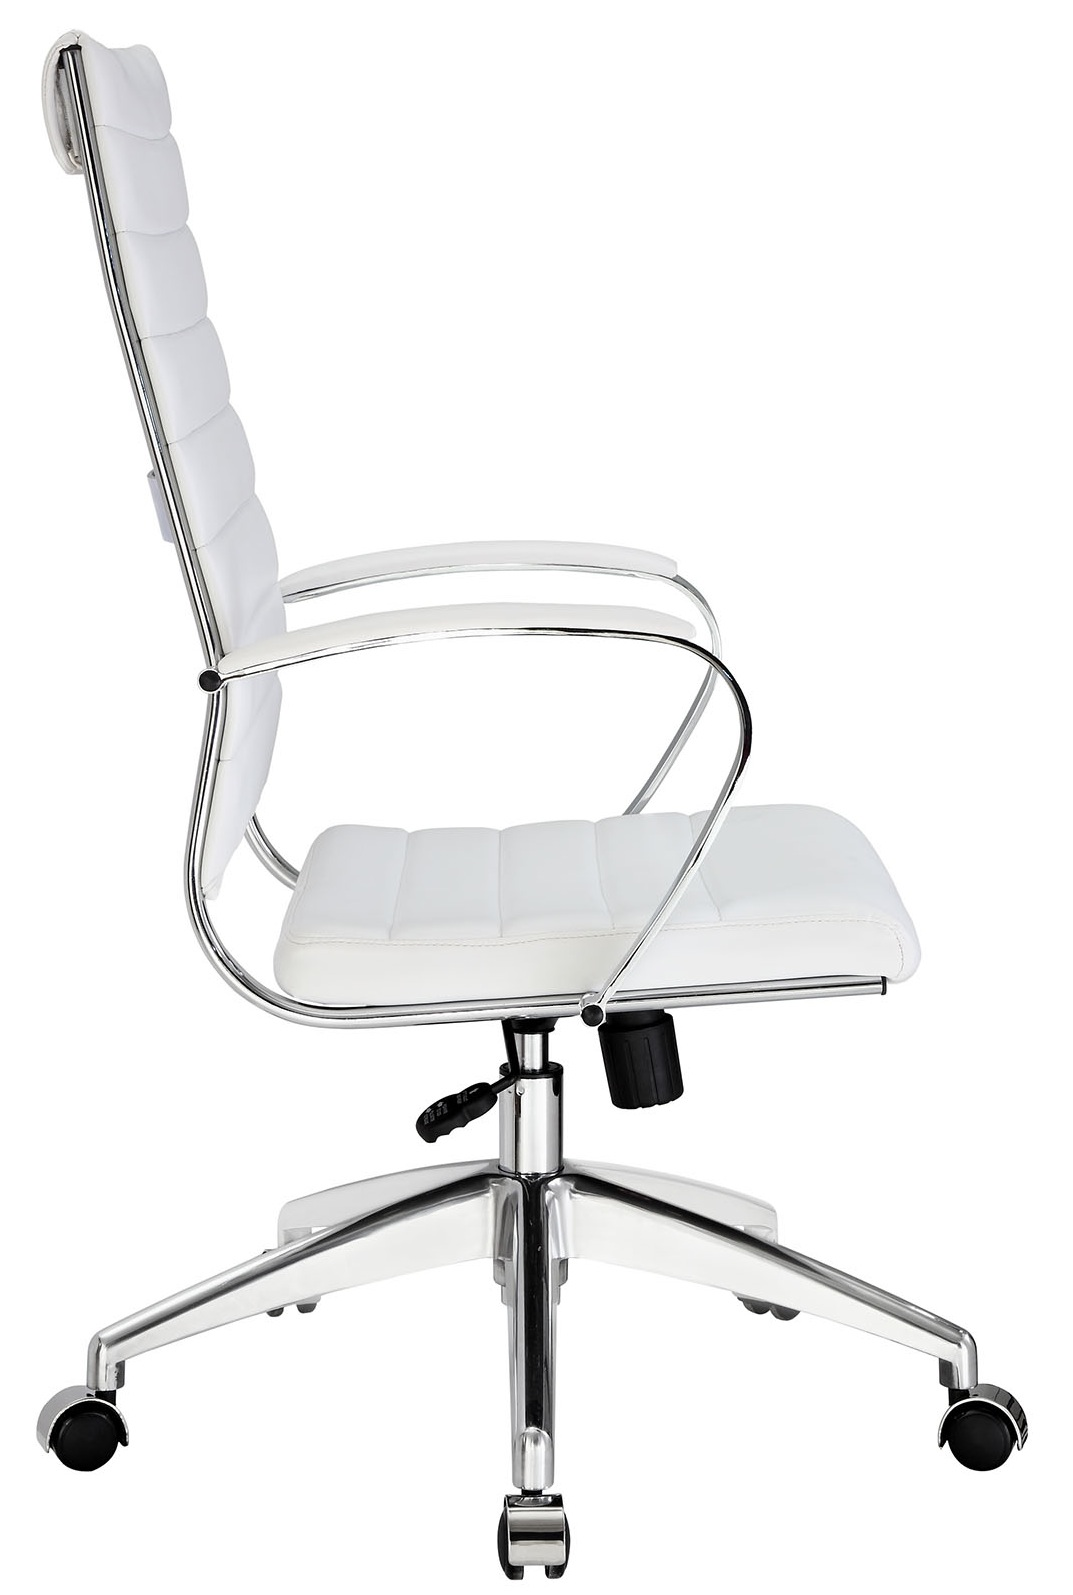 aria-hb-chair-white.jpg